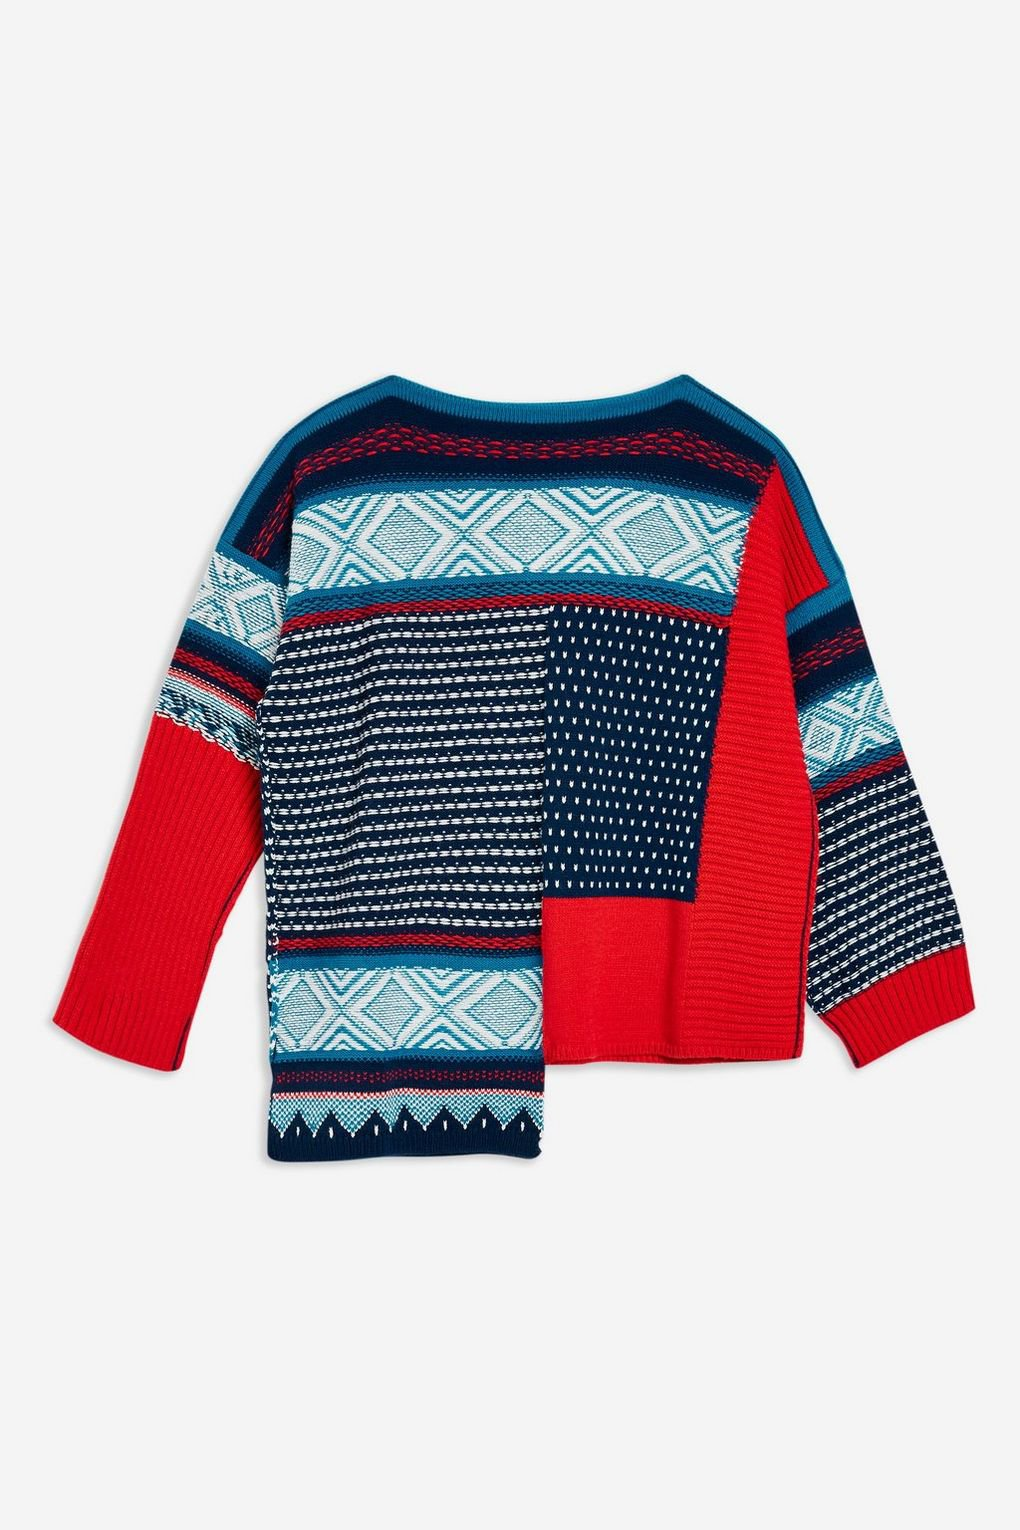 Patched Fair Isle Jumper - Jumpers & Cardigans - Clothing - Topshop